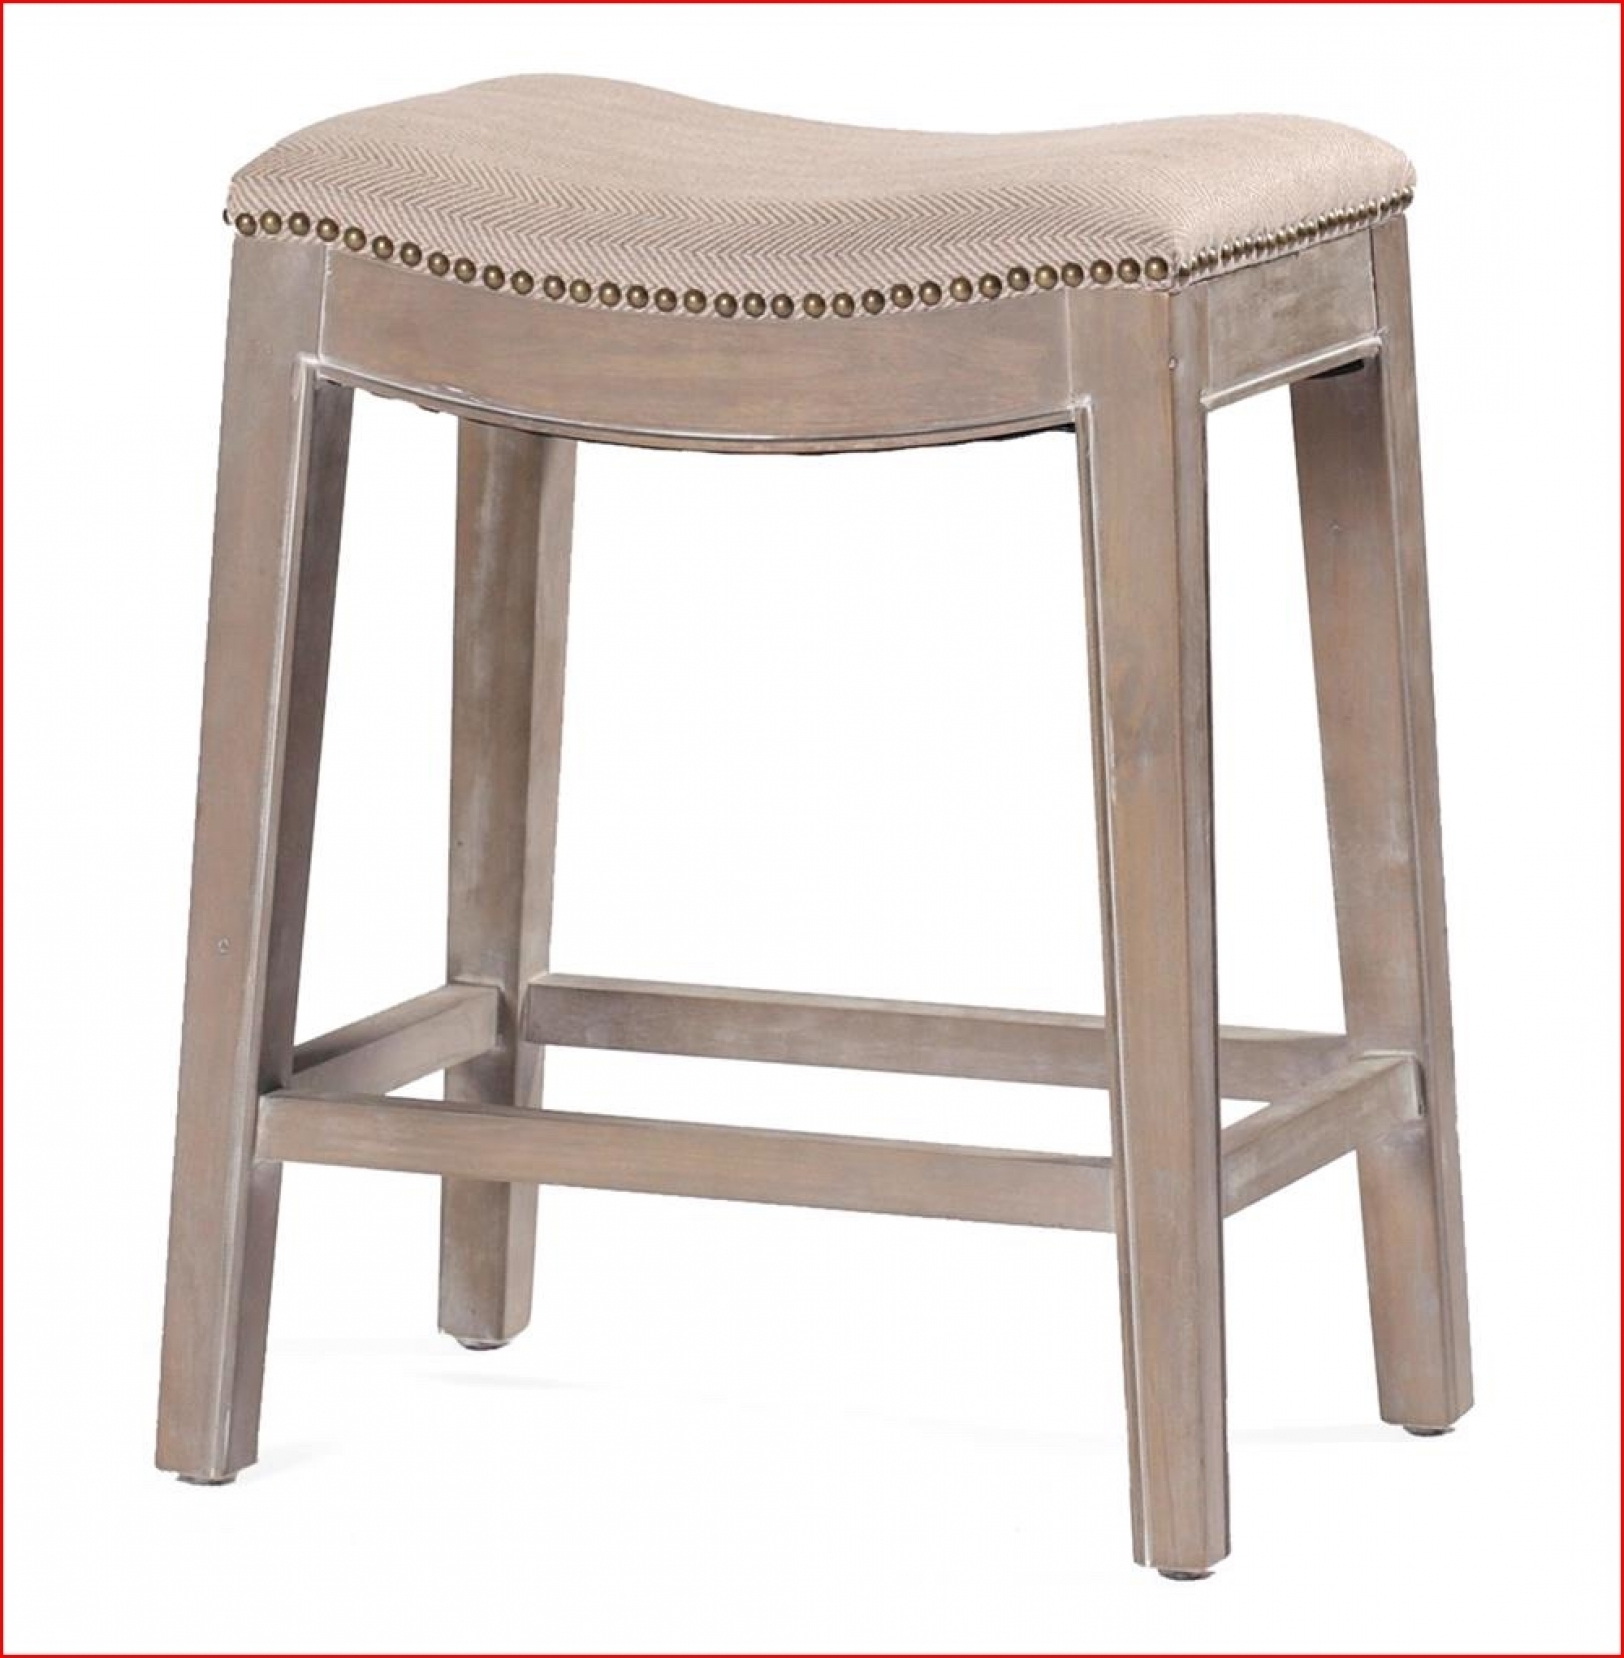 French Country Counter Stools Images That Looks Charming To Inside French Country Counter Stools Decor For Your Kitchen (Image 12 of 20)